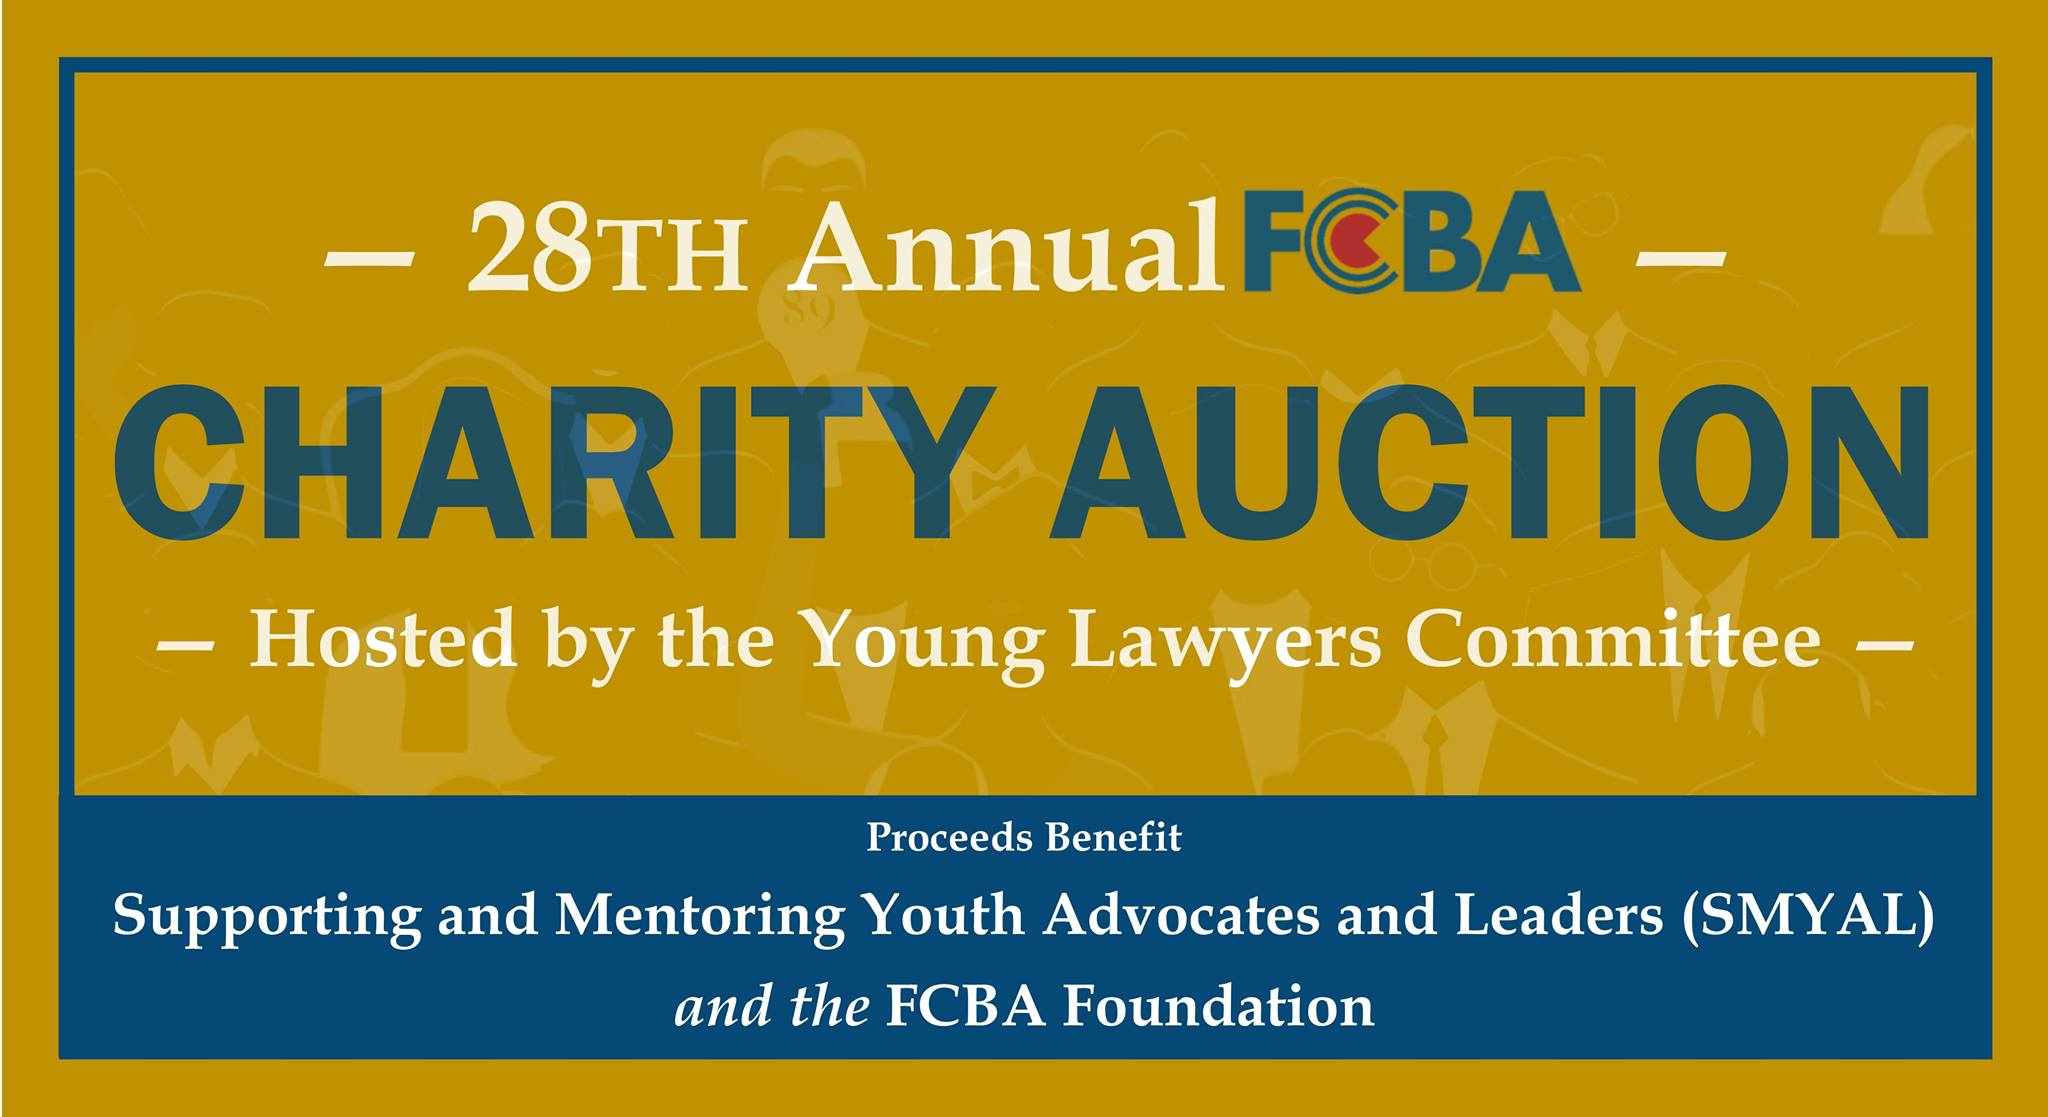 Mark Your Calendar for the 28th Annual FCBA Charity Auction